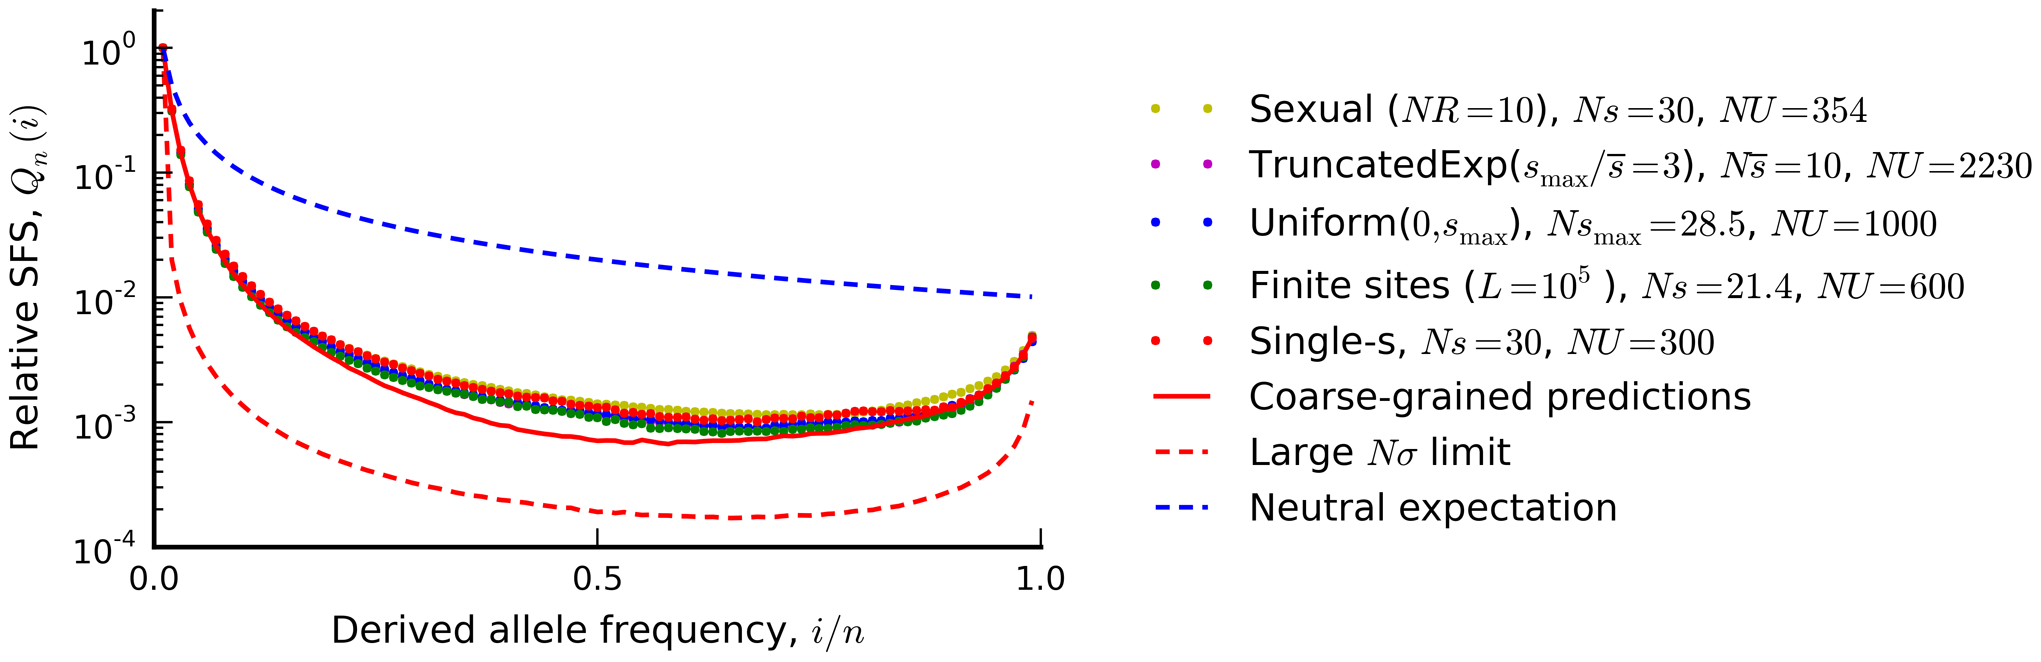 "The silent site frequency spectrum from <em class=""ref"">Figure 4</em> (red dots) and forward-time simulations of three equivalent populations predicted from our coarse-grained theory."